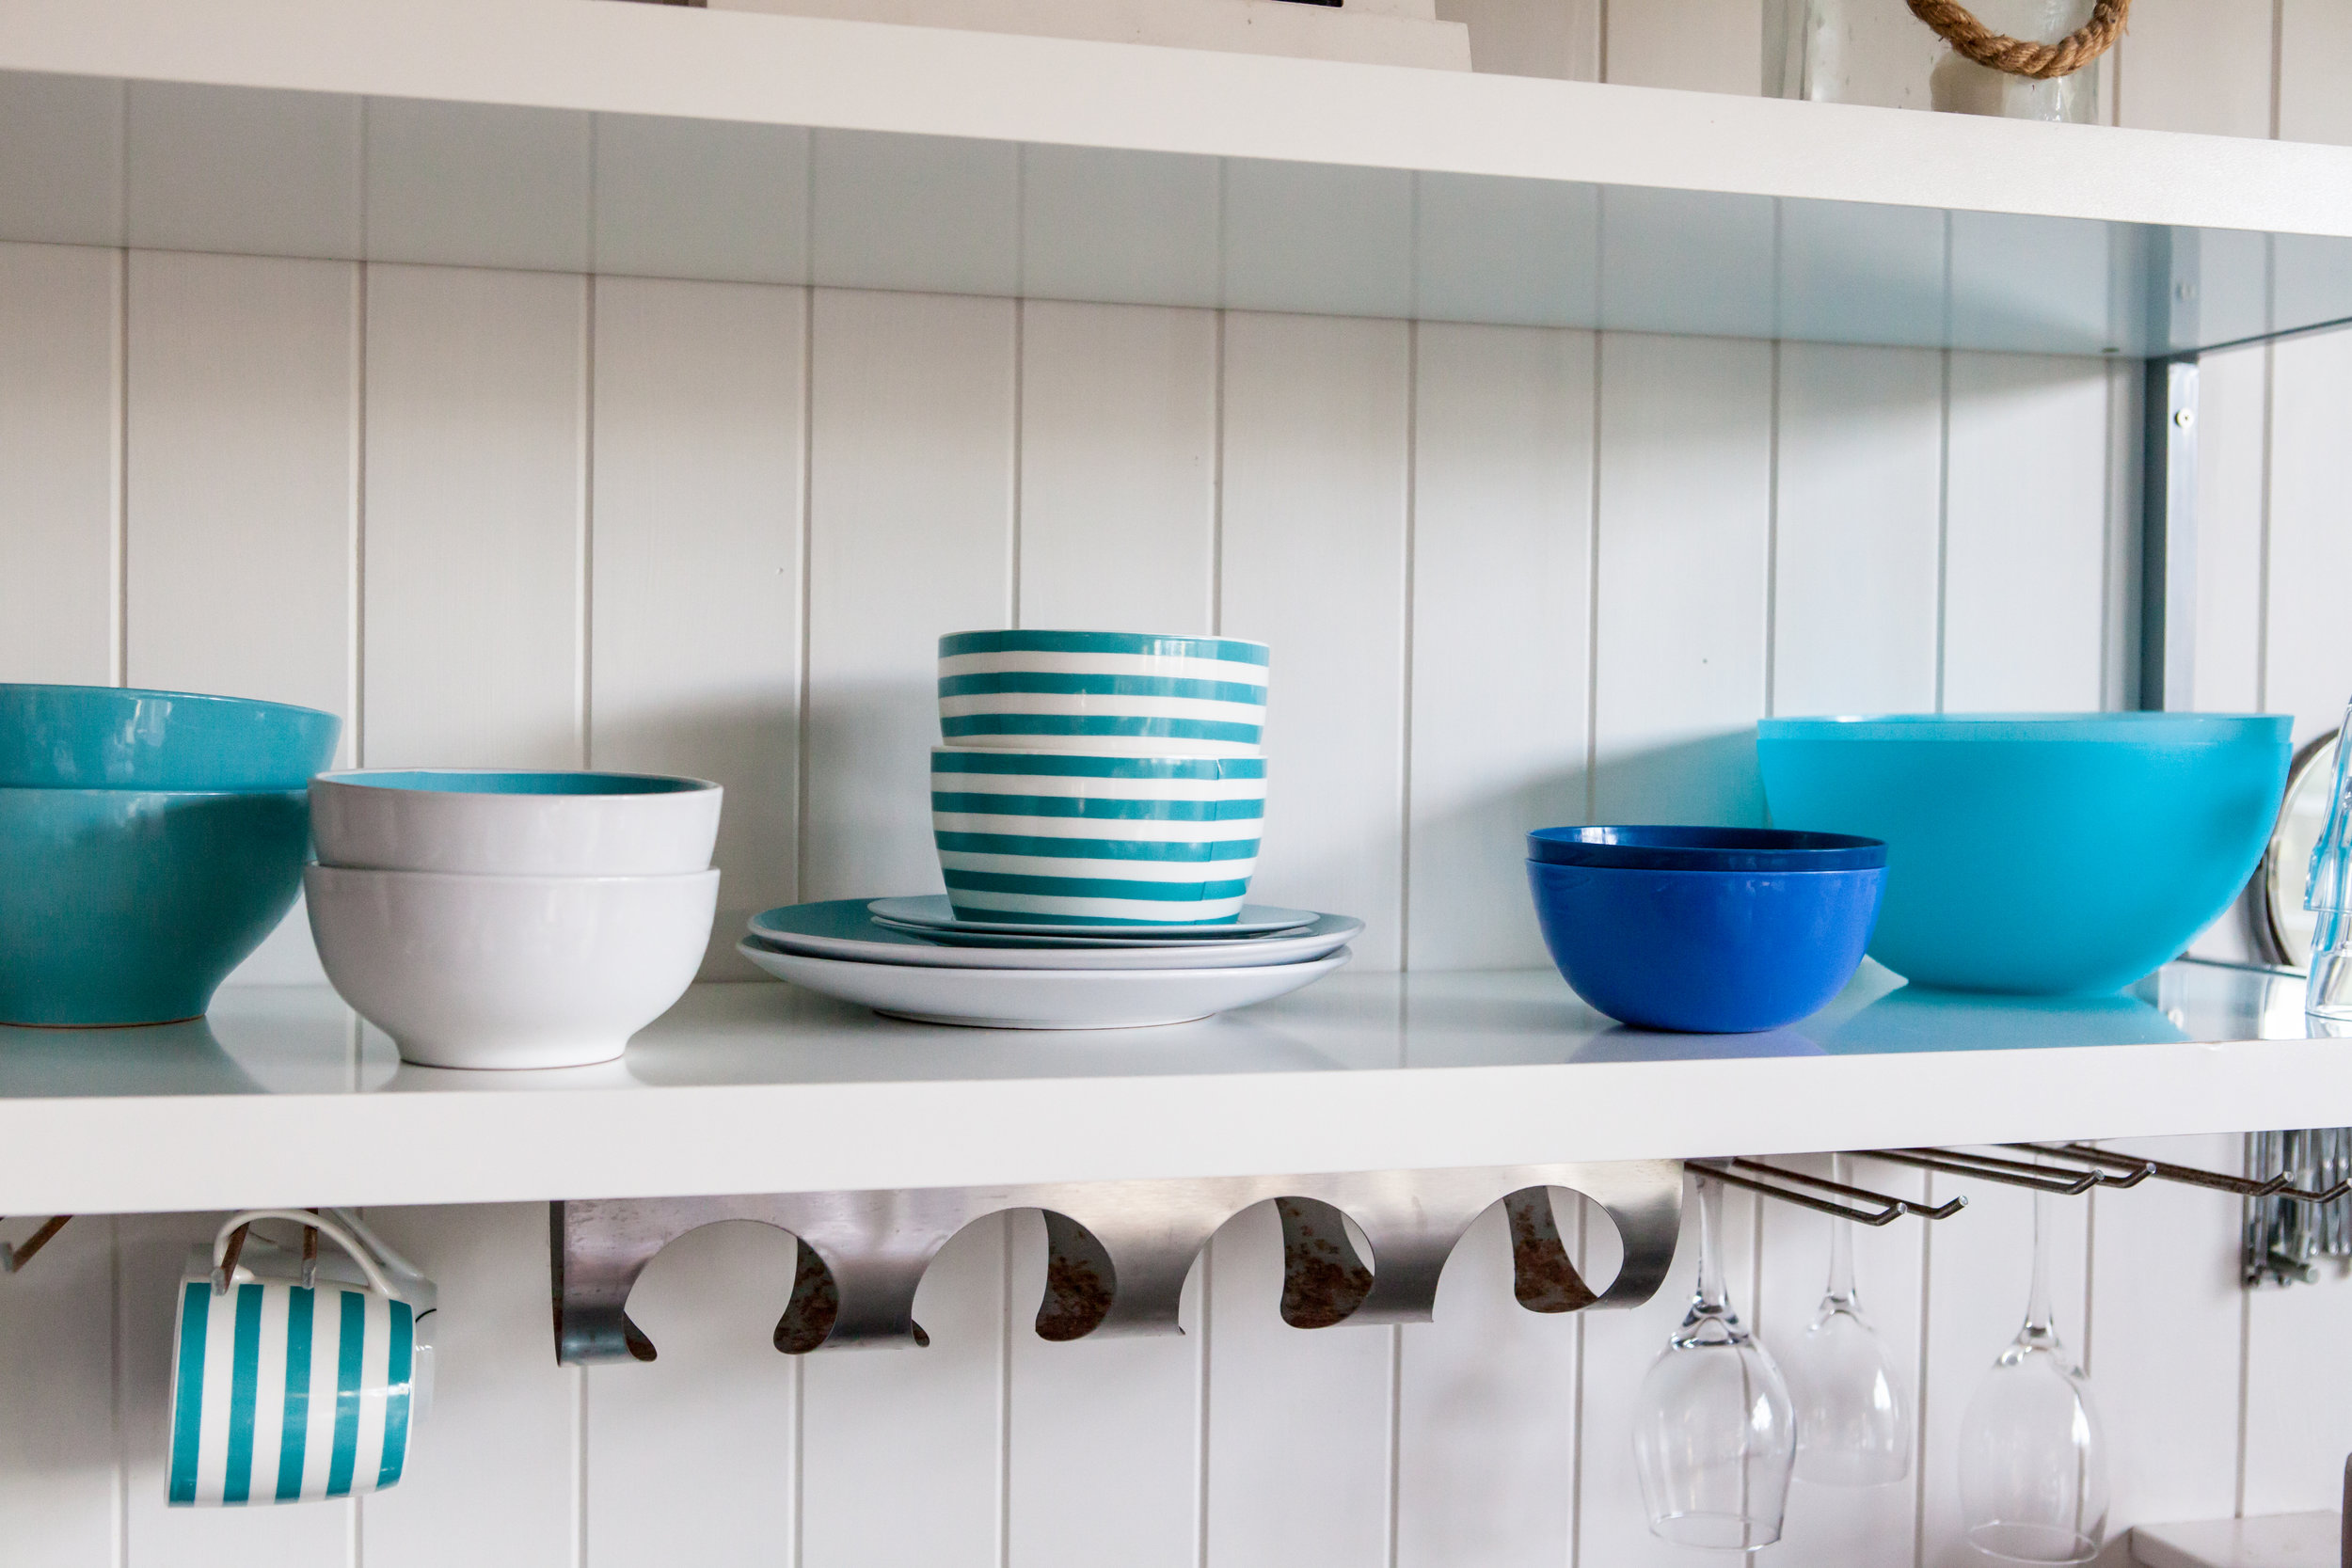 or creating that coastal vibe at home -